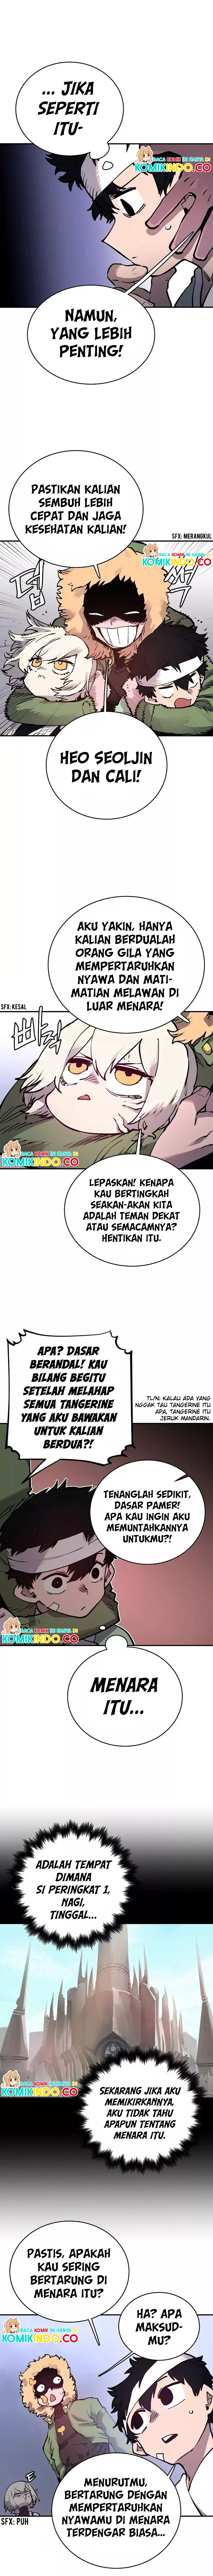 Player Chapter 19